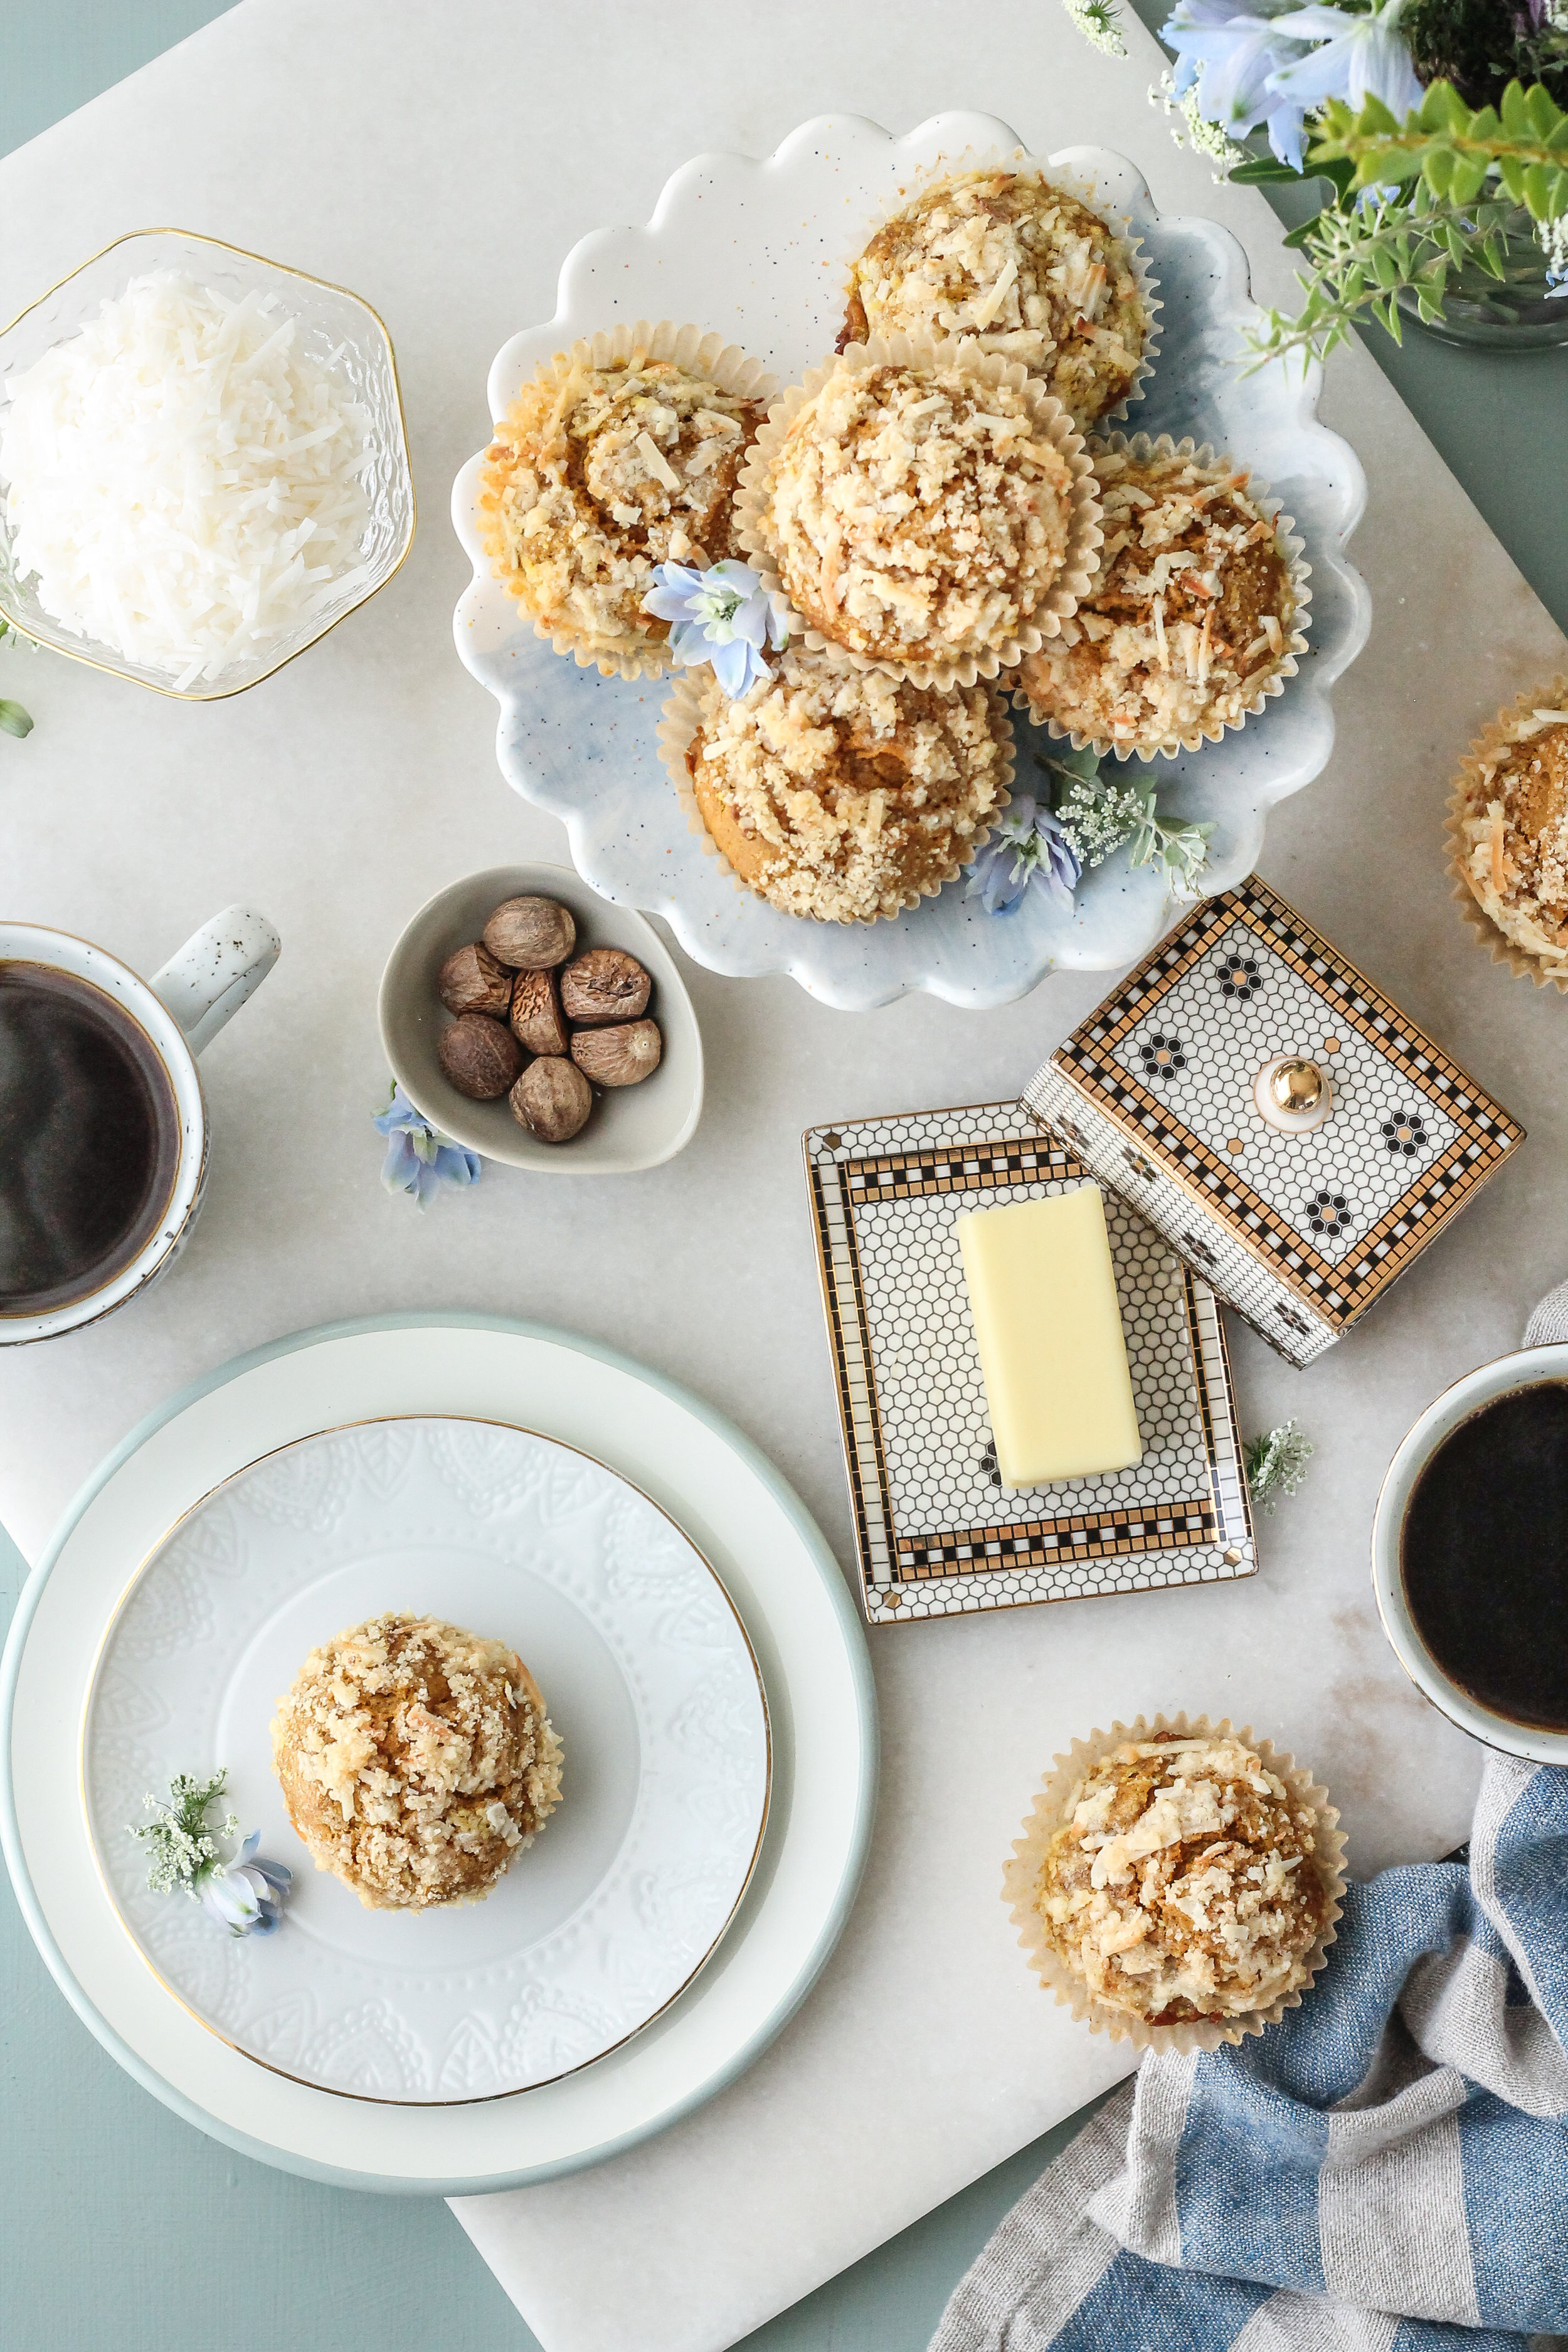 Pumpkin Coconut Muffins with Coconut Streusel are the perfect back-to-school breakfast! Find this autumn recipe and so many others on WWW.PEDANTICFOODIE.COM!